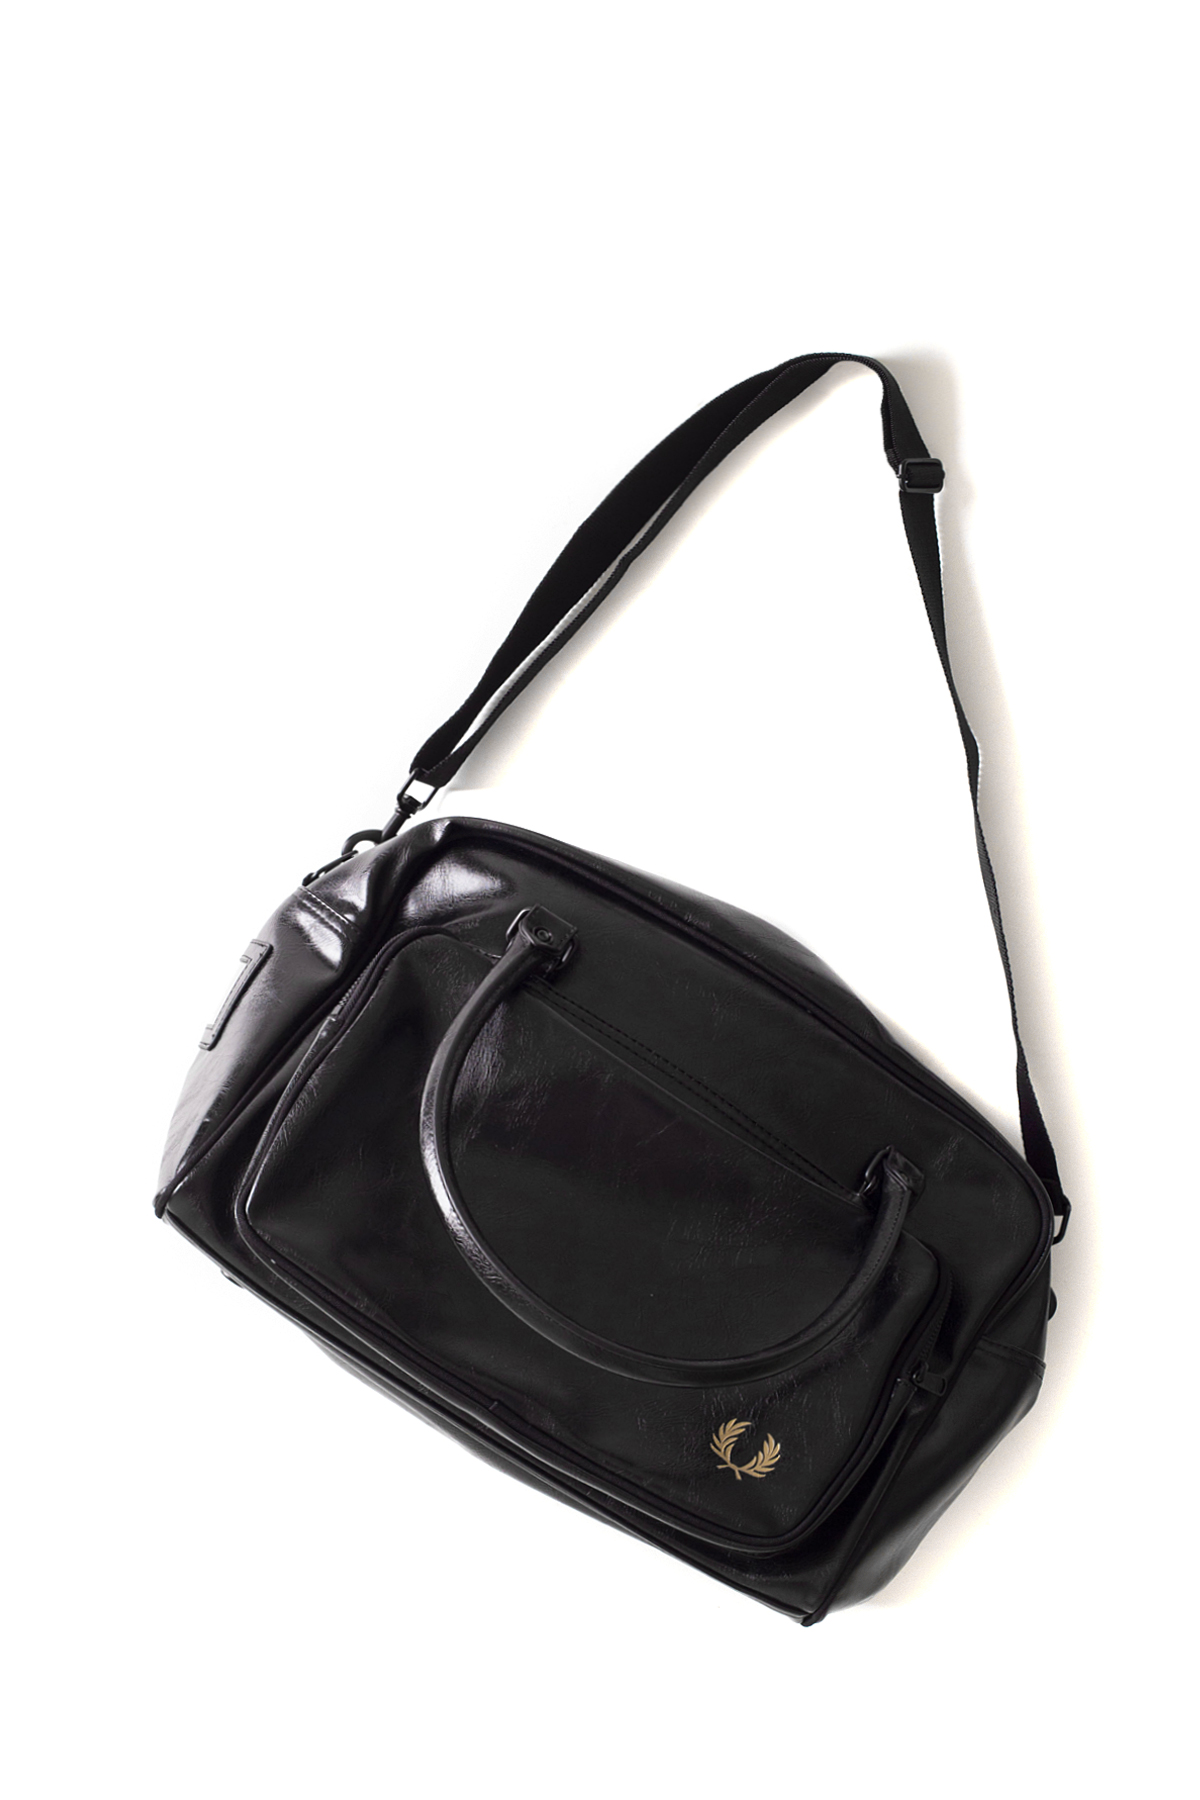 FRED PERRY : Classic Holdall (Black / Gold)